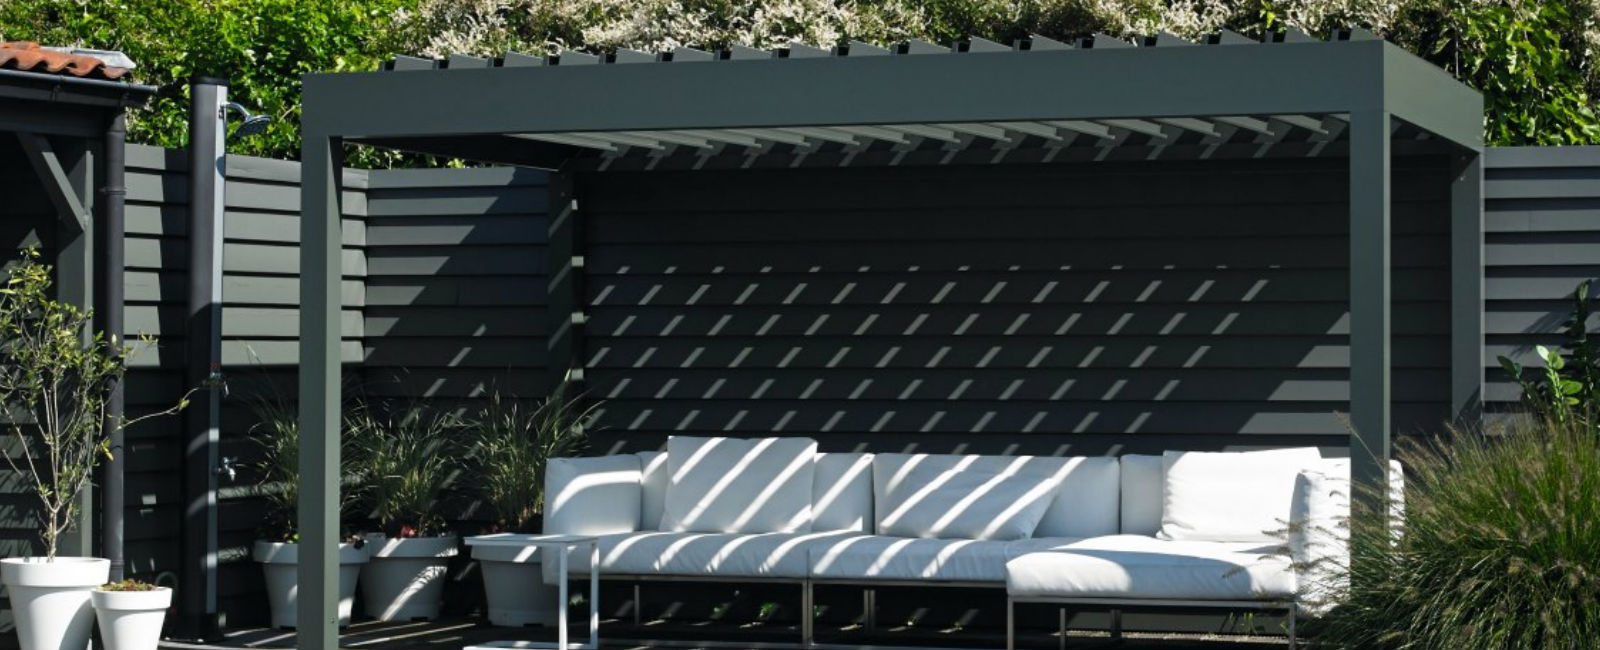 Retractable Roof Systems Uk Commercial Awnings Giant Umbrellas Awnings Canopies